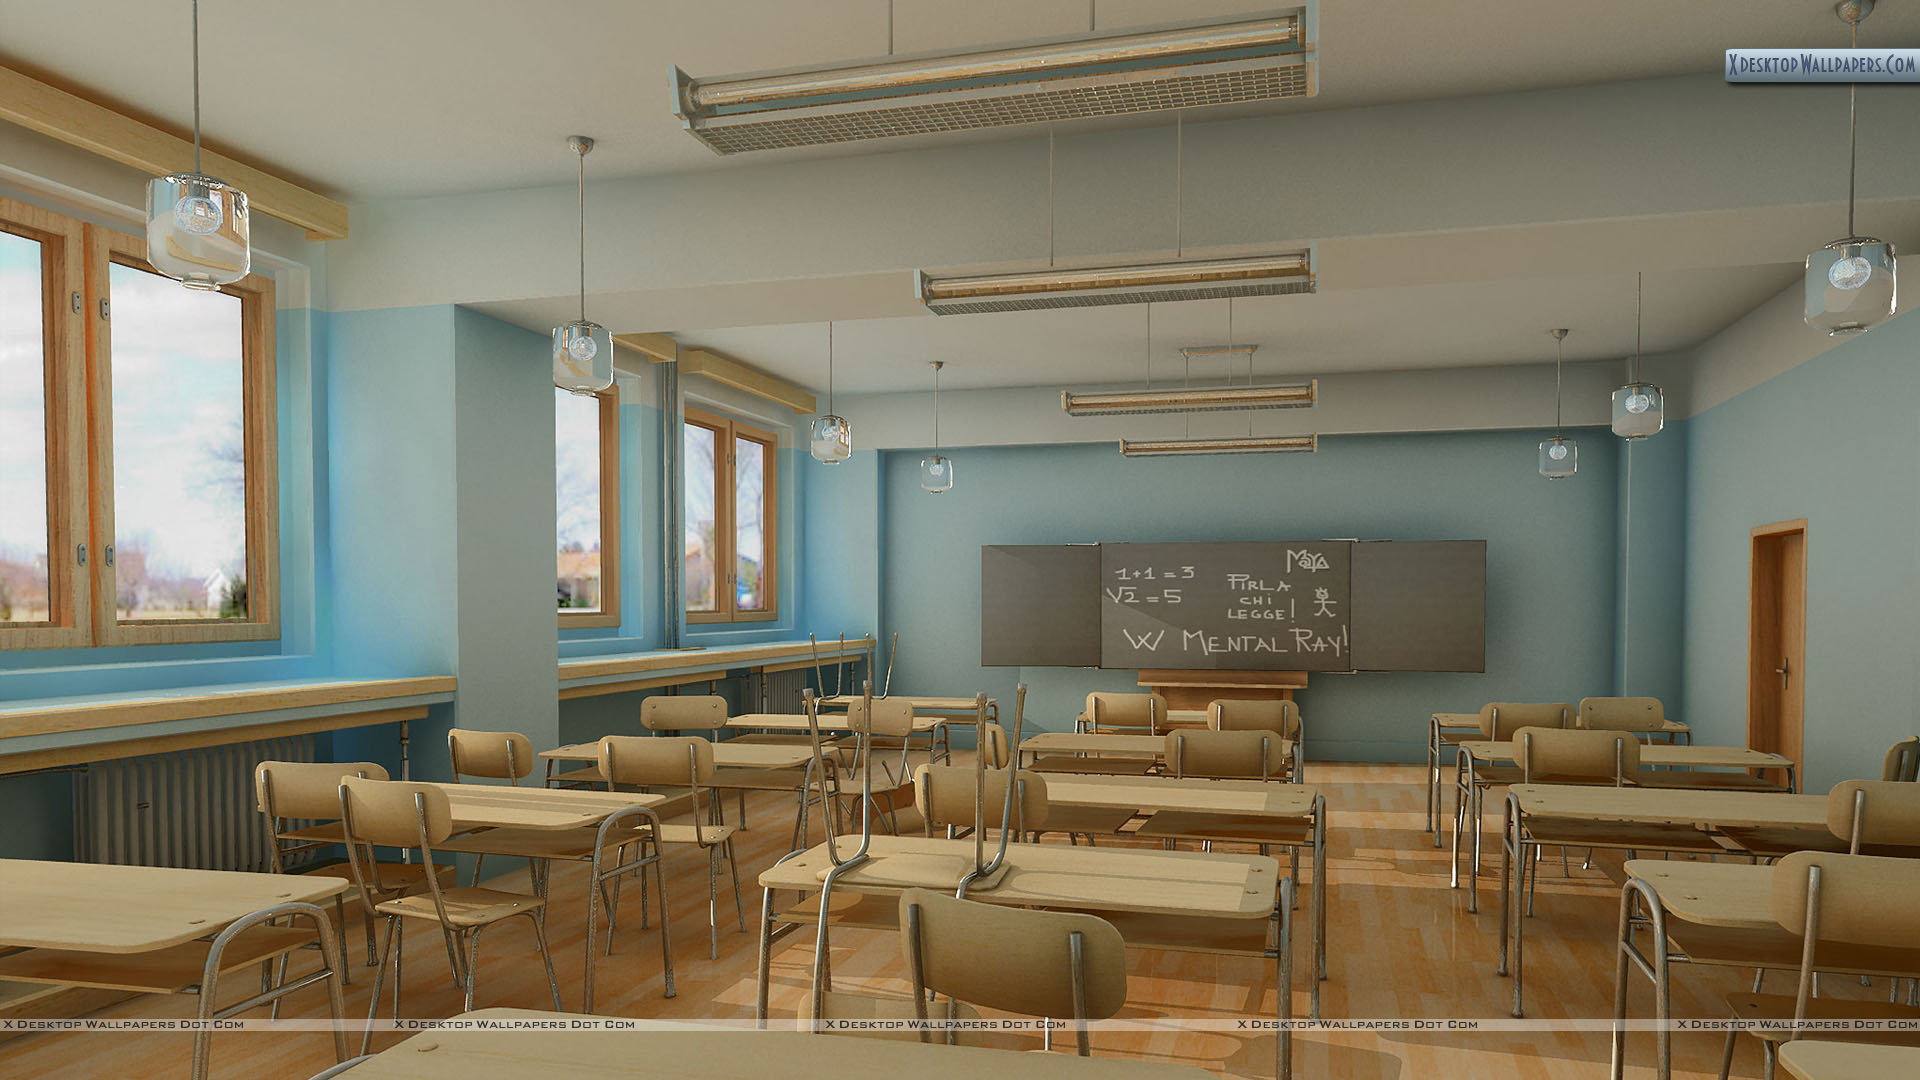 Free class room wallpaper for Room free